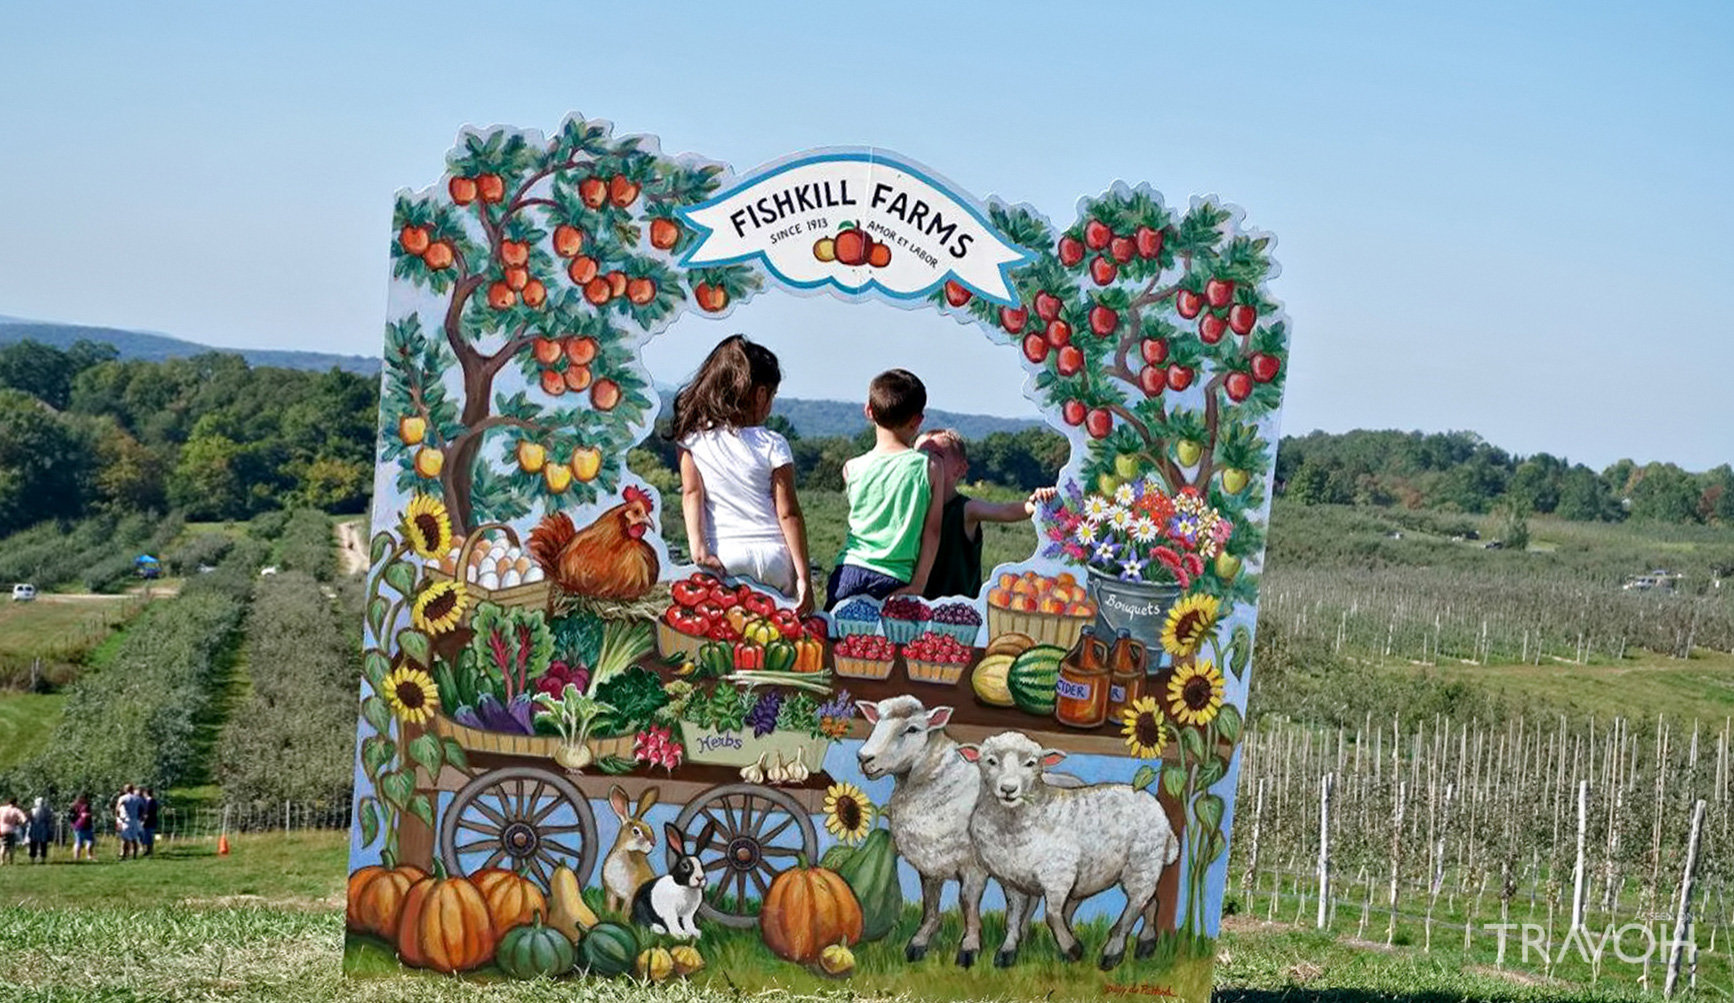 Fall Harvest Festival at Fishkill Farms - 9 Fishkill Farm Rd, Hopewell Junction, NY, USA